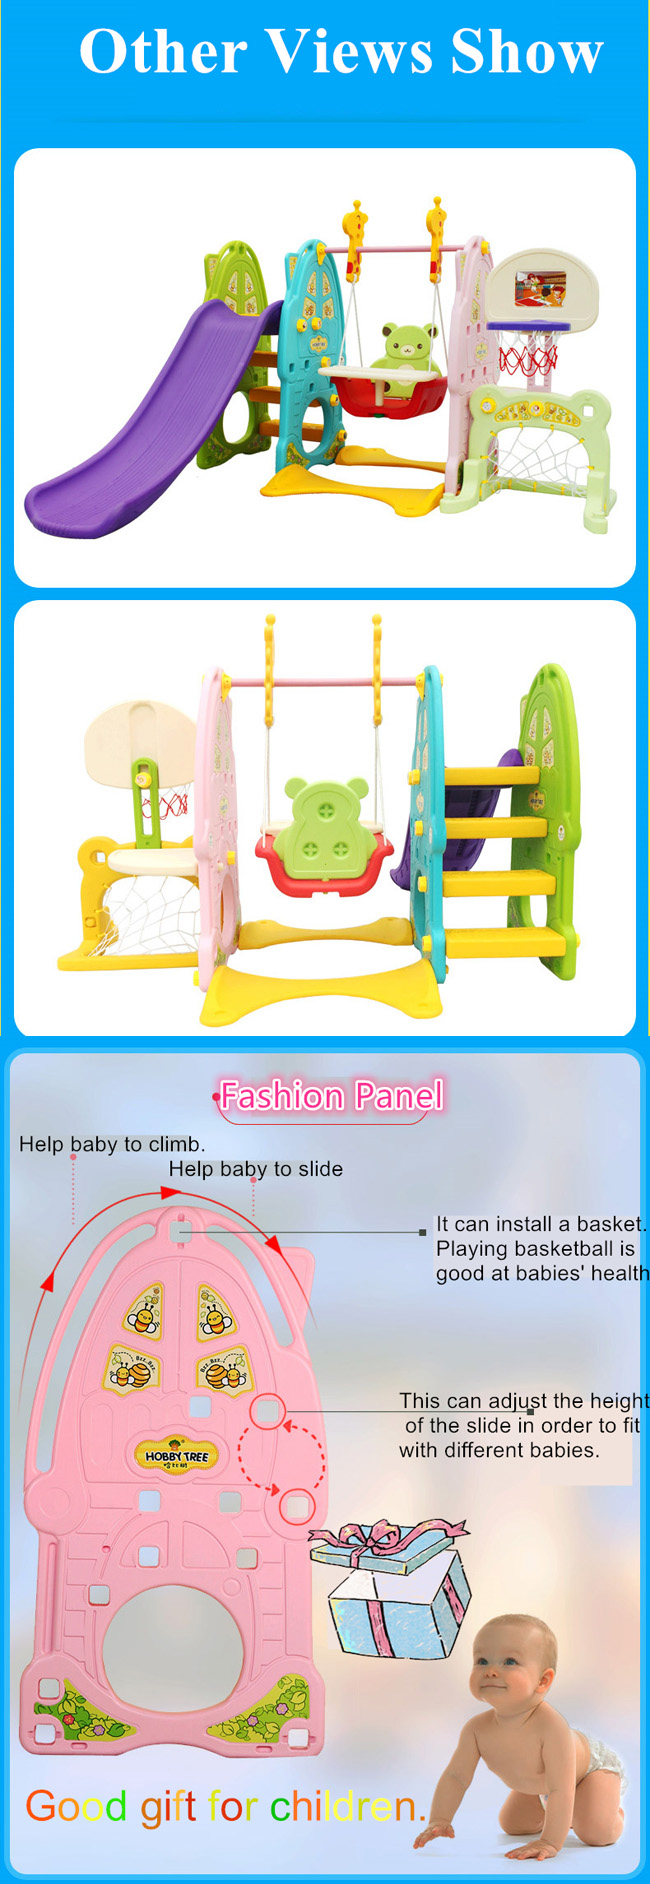 Small Plastic Slide and Slide for Toddler with Basket Hoop